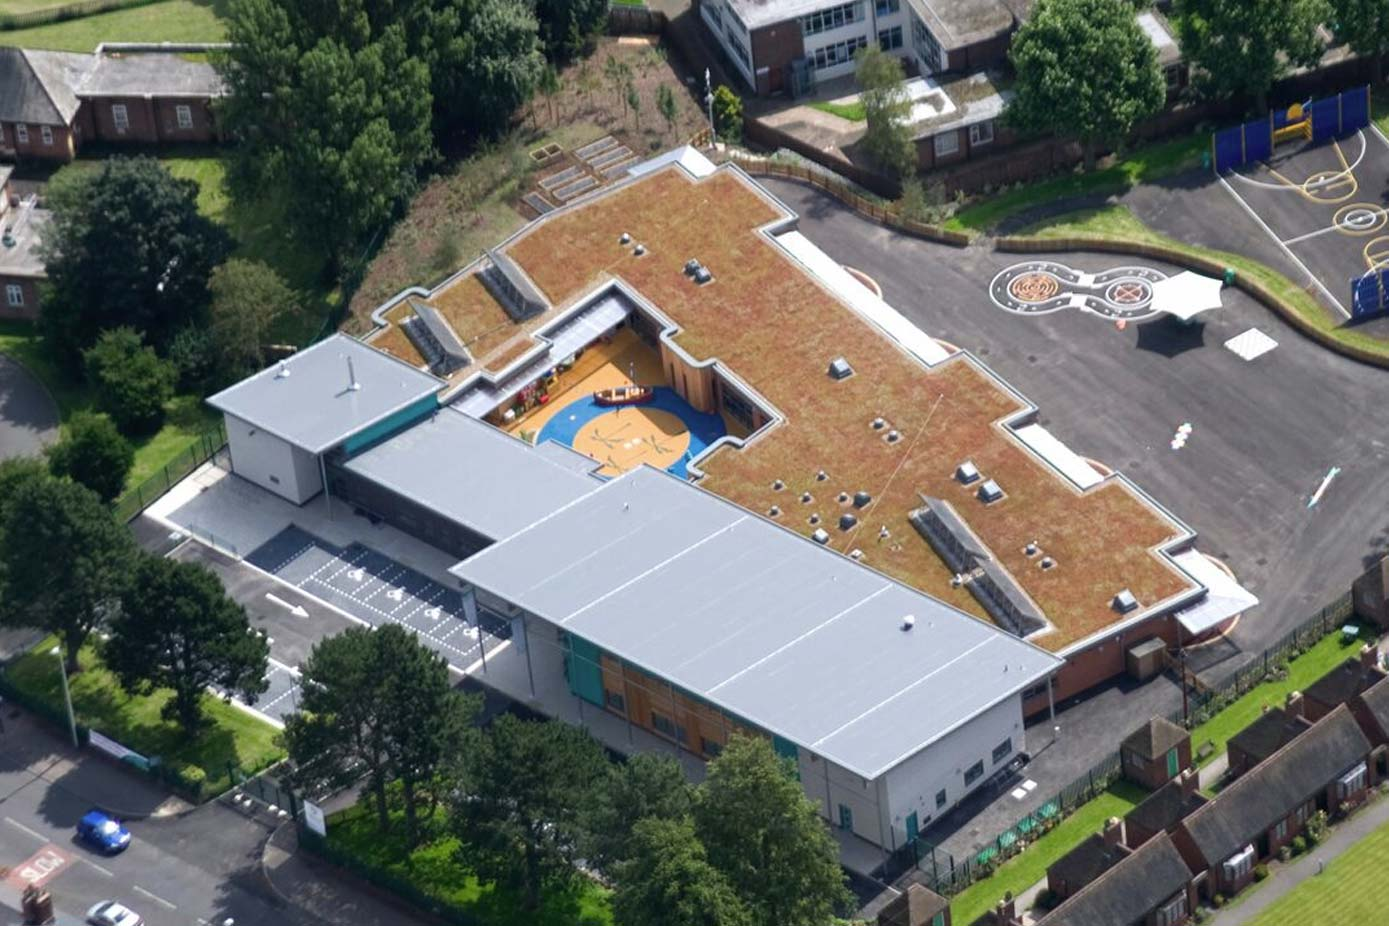 Exterior view of a green roof on a building